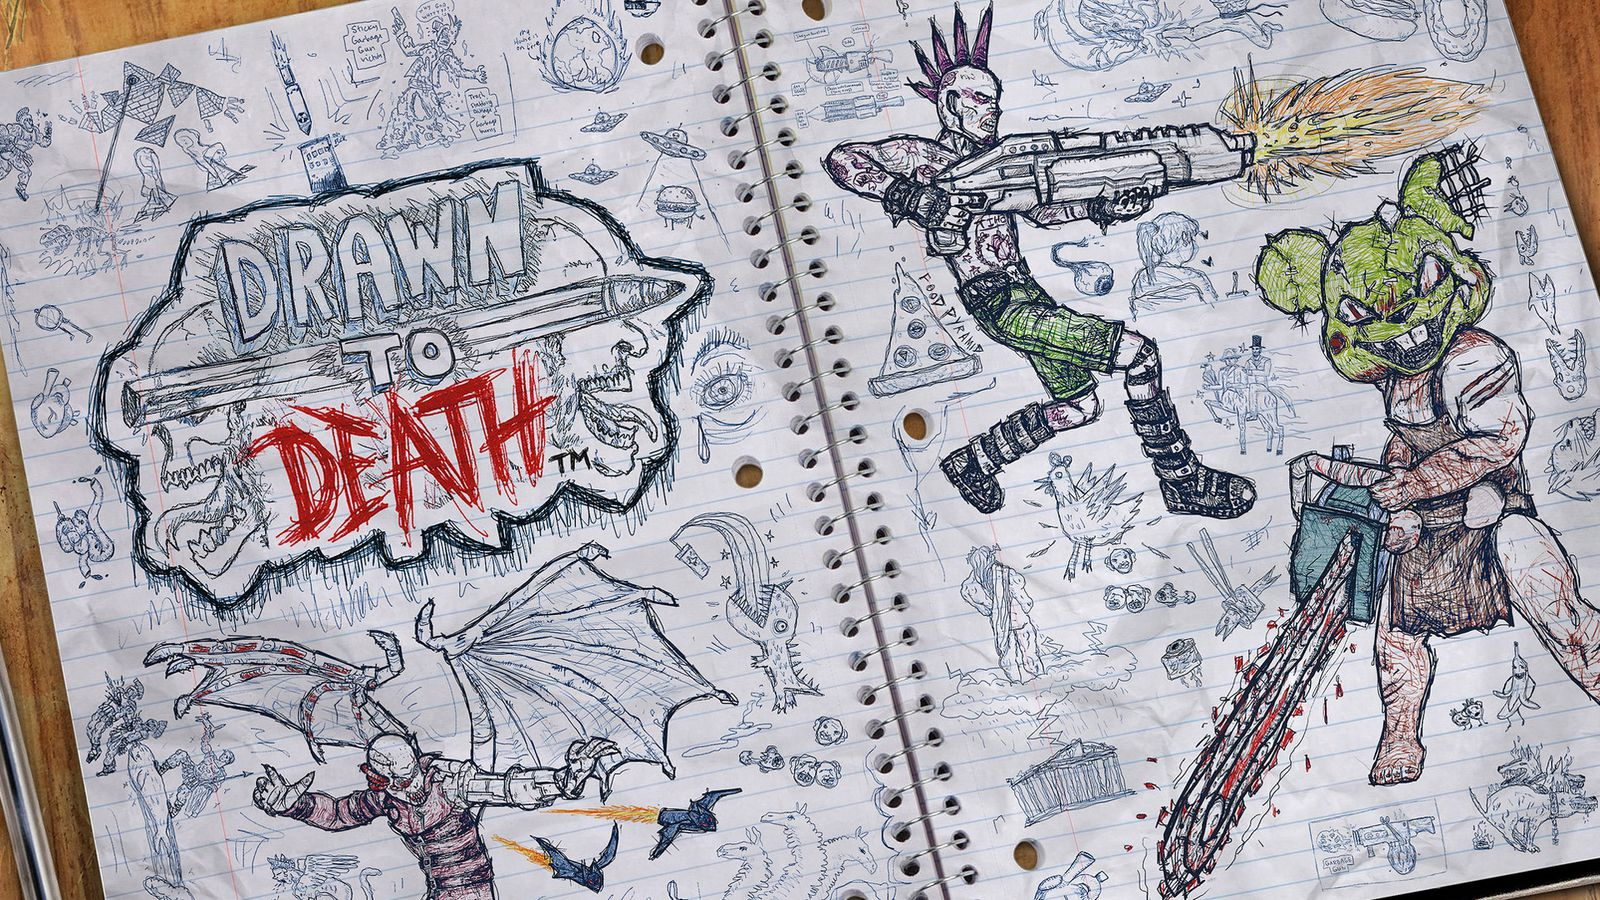 Does Drawn to Death have any plans after high school?